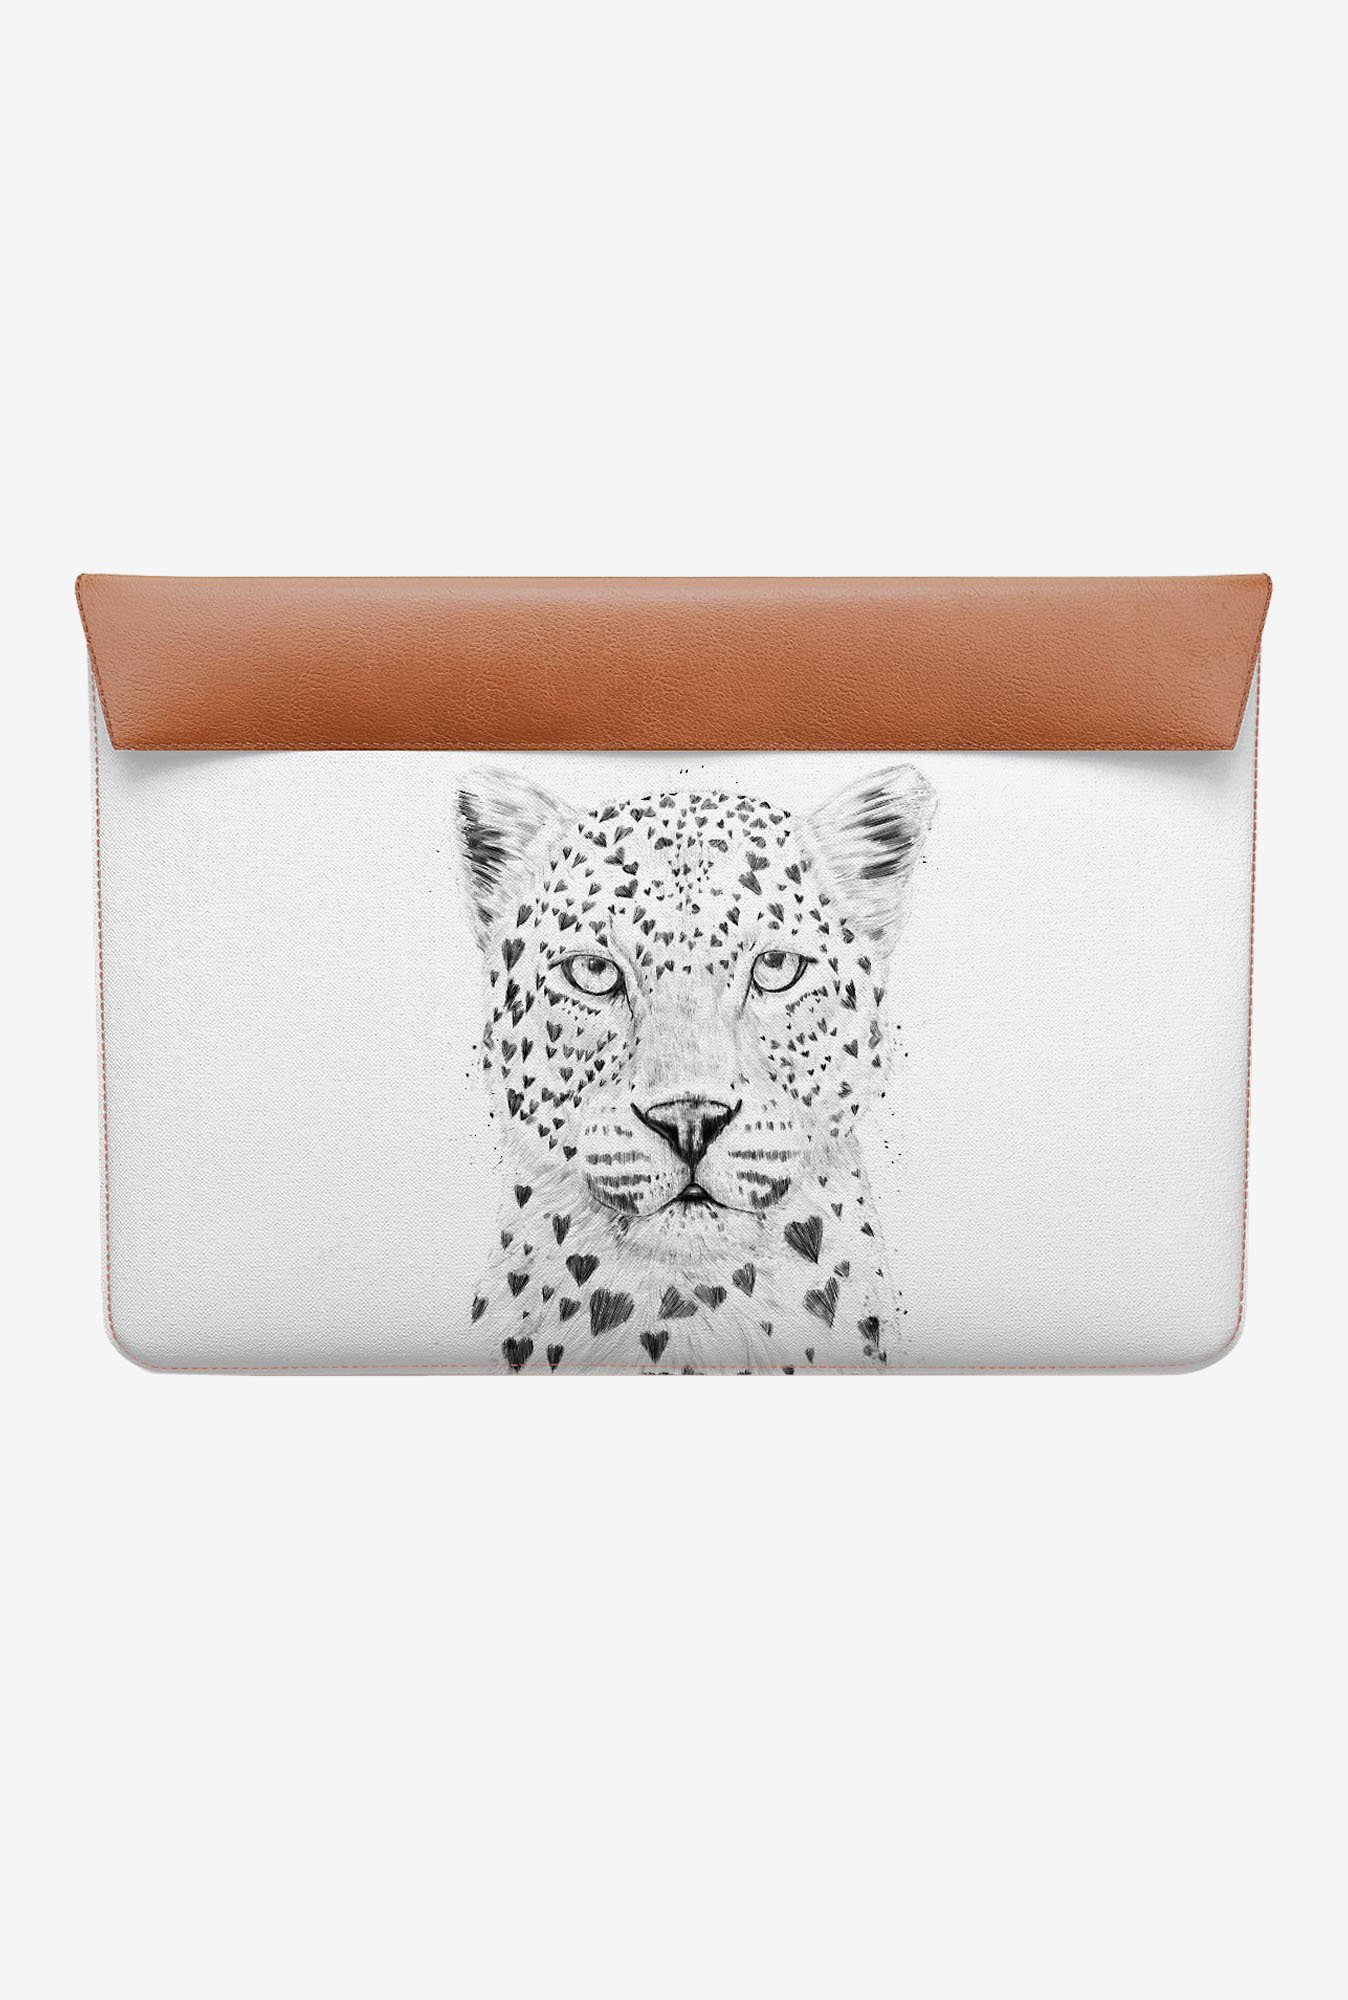 DailyObjects Lovely Leopard MacBook 12 Envelope Sleeve